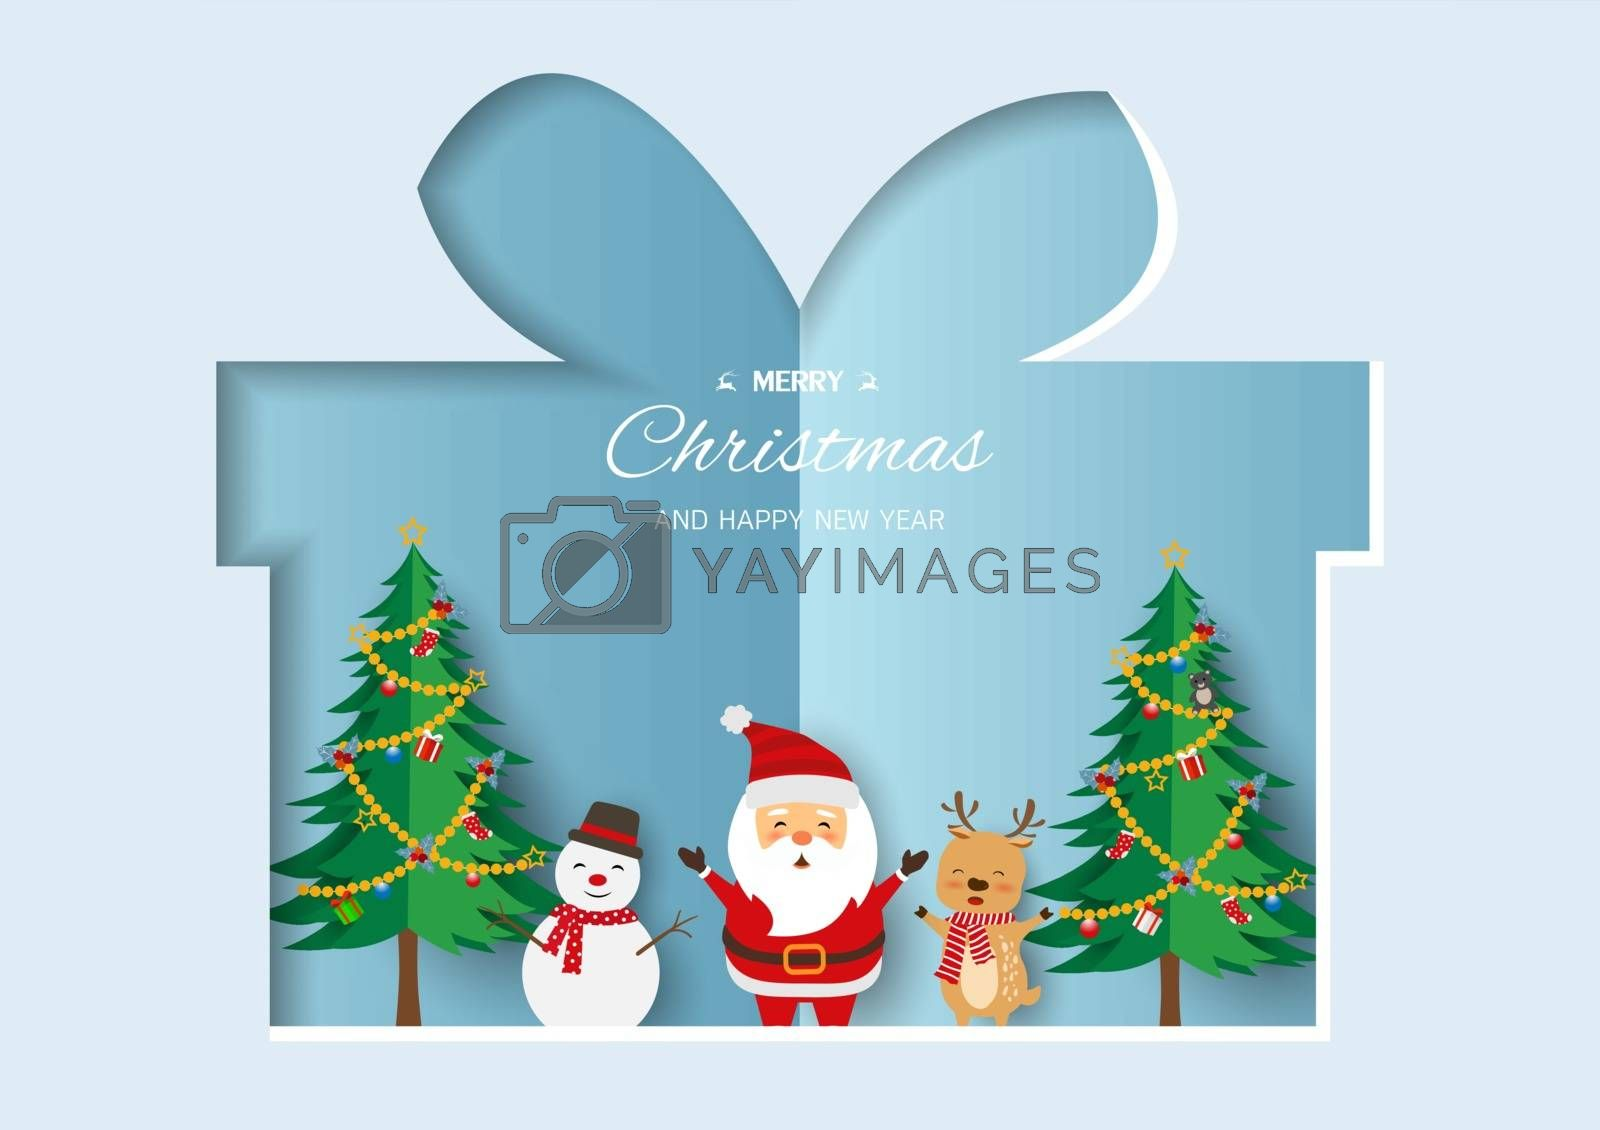 Merry Christmas and Happy new year greeting card,Santa Claus with friends happy on soft blue paper art background by PIMPAKA